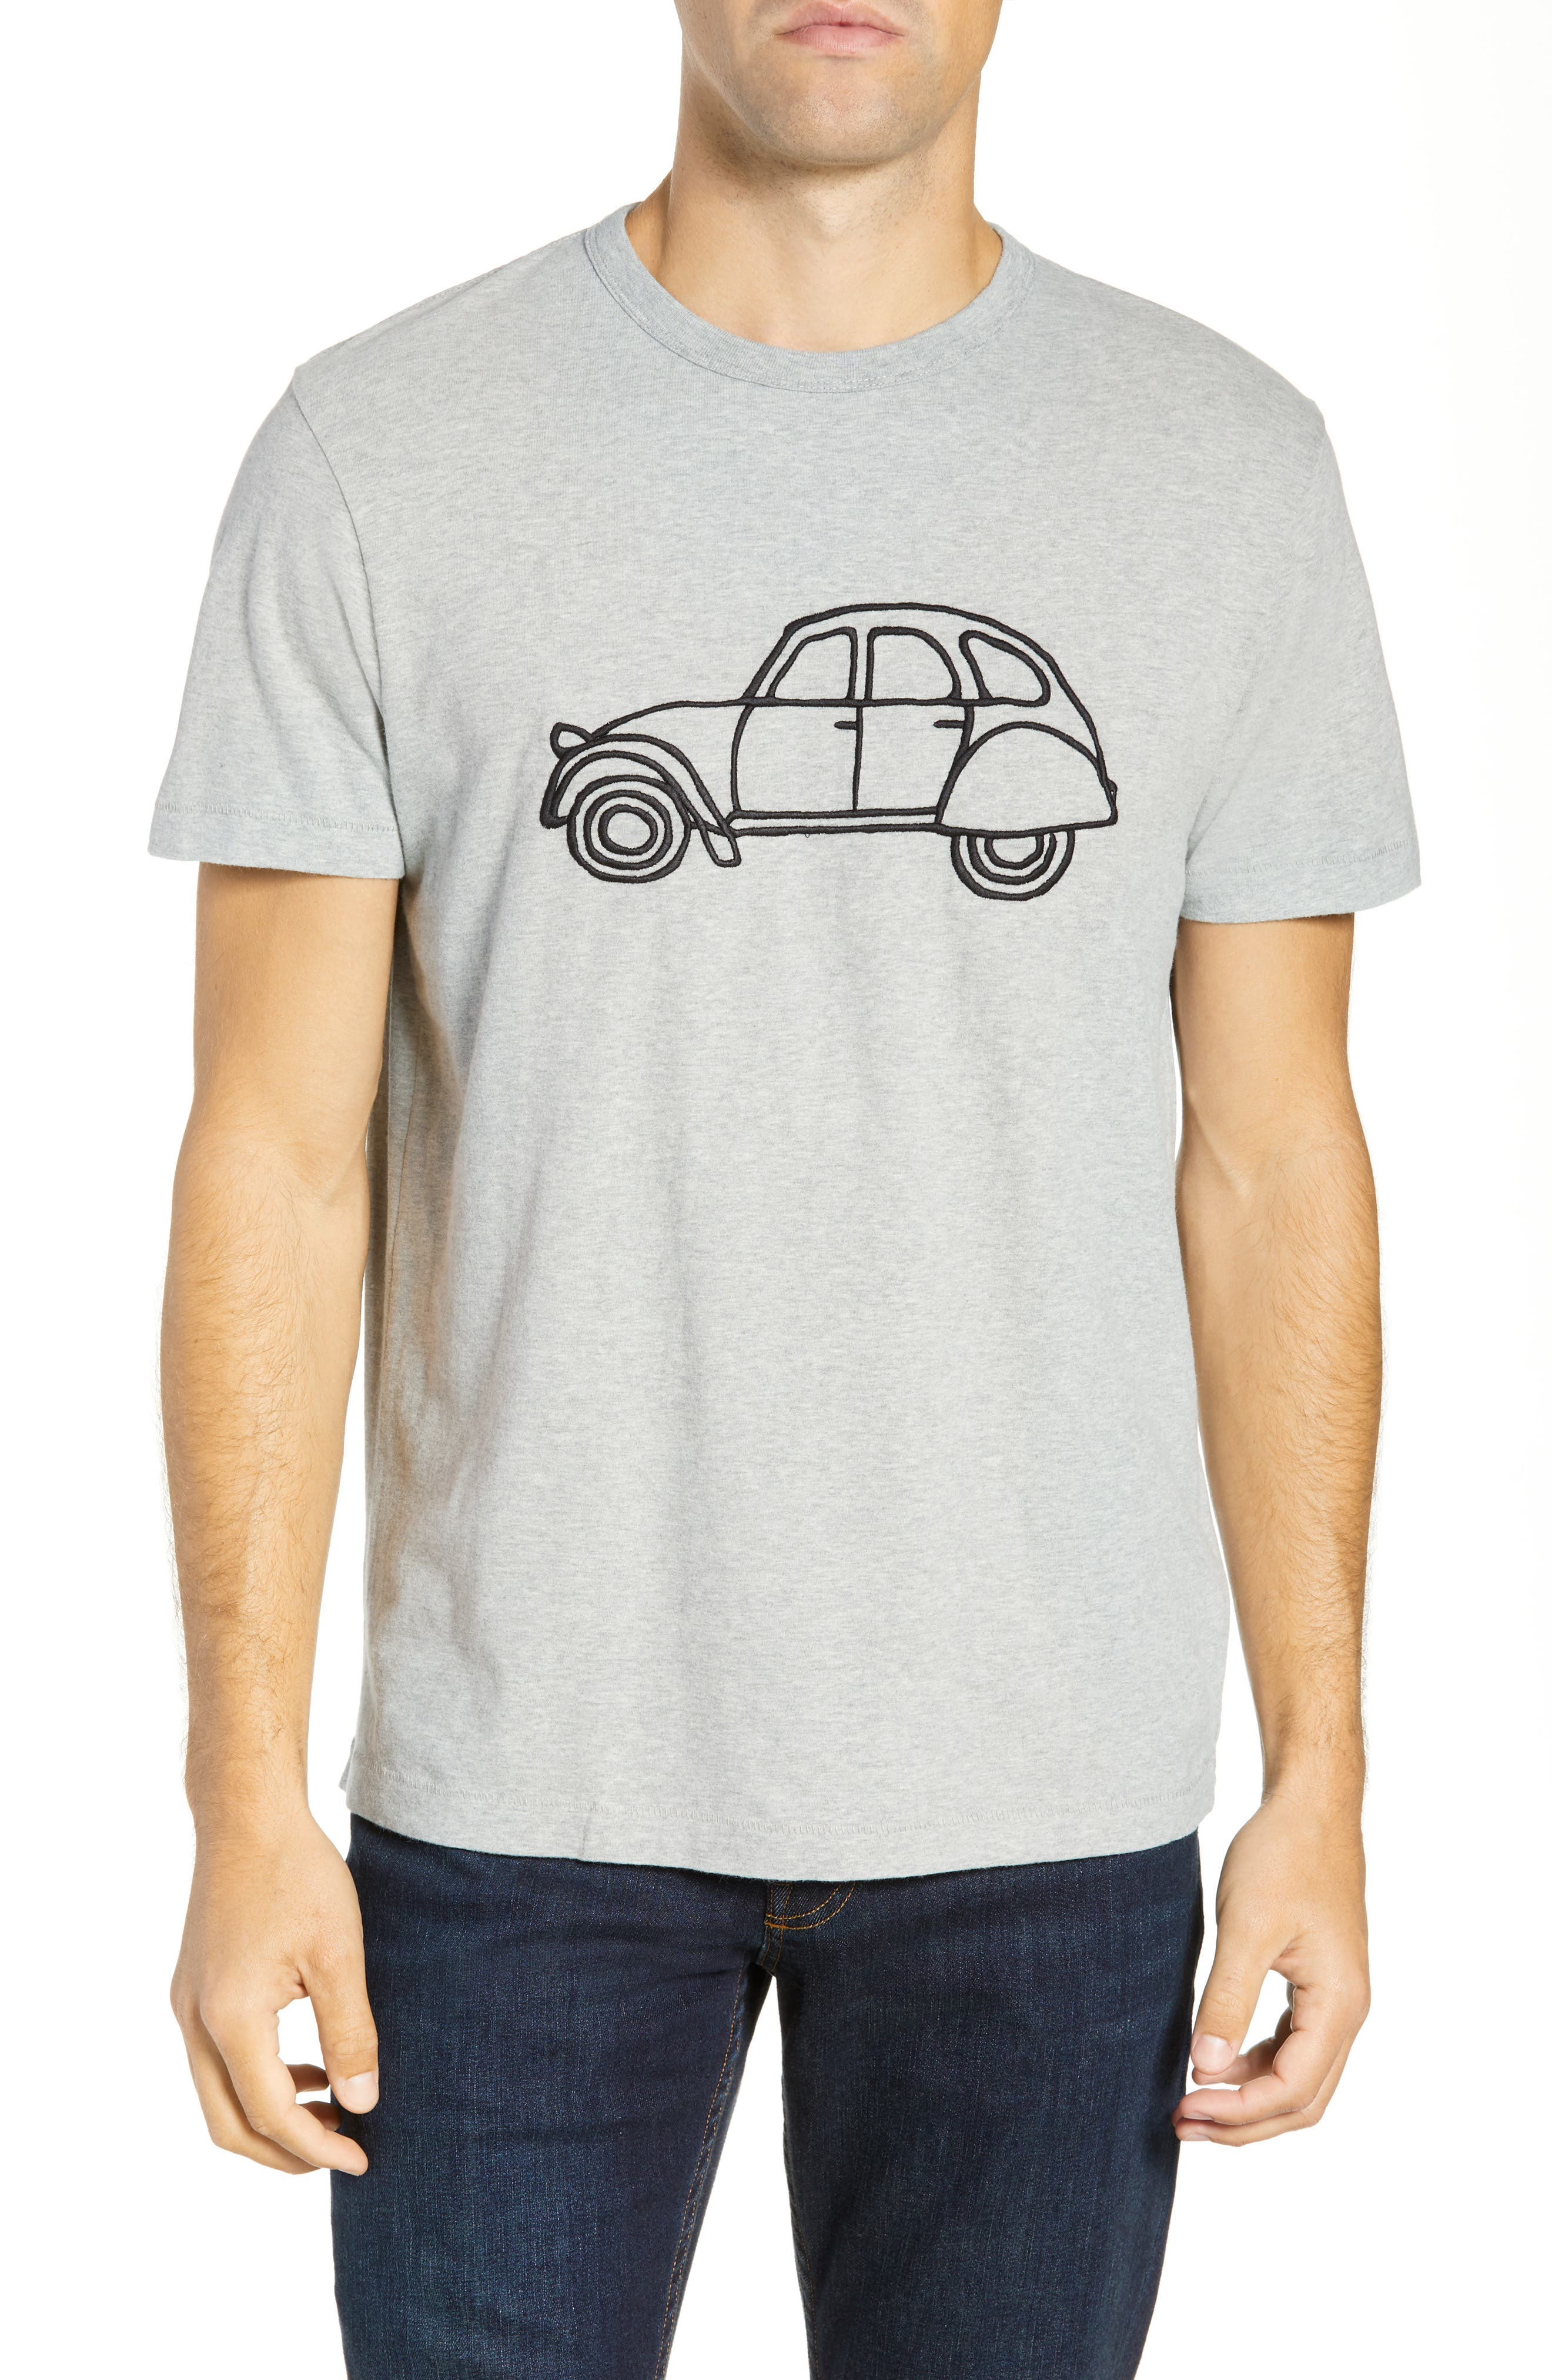 FRENCH CONNECTION Embroidered Car Cotton T-Shirt, Main, color, 020